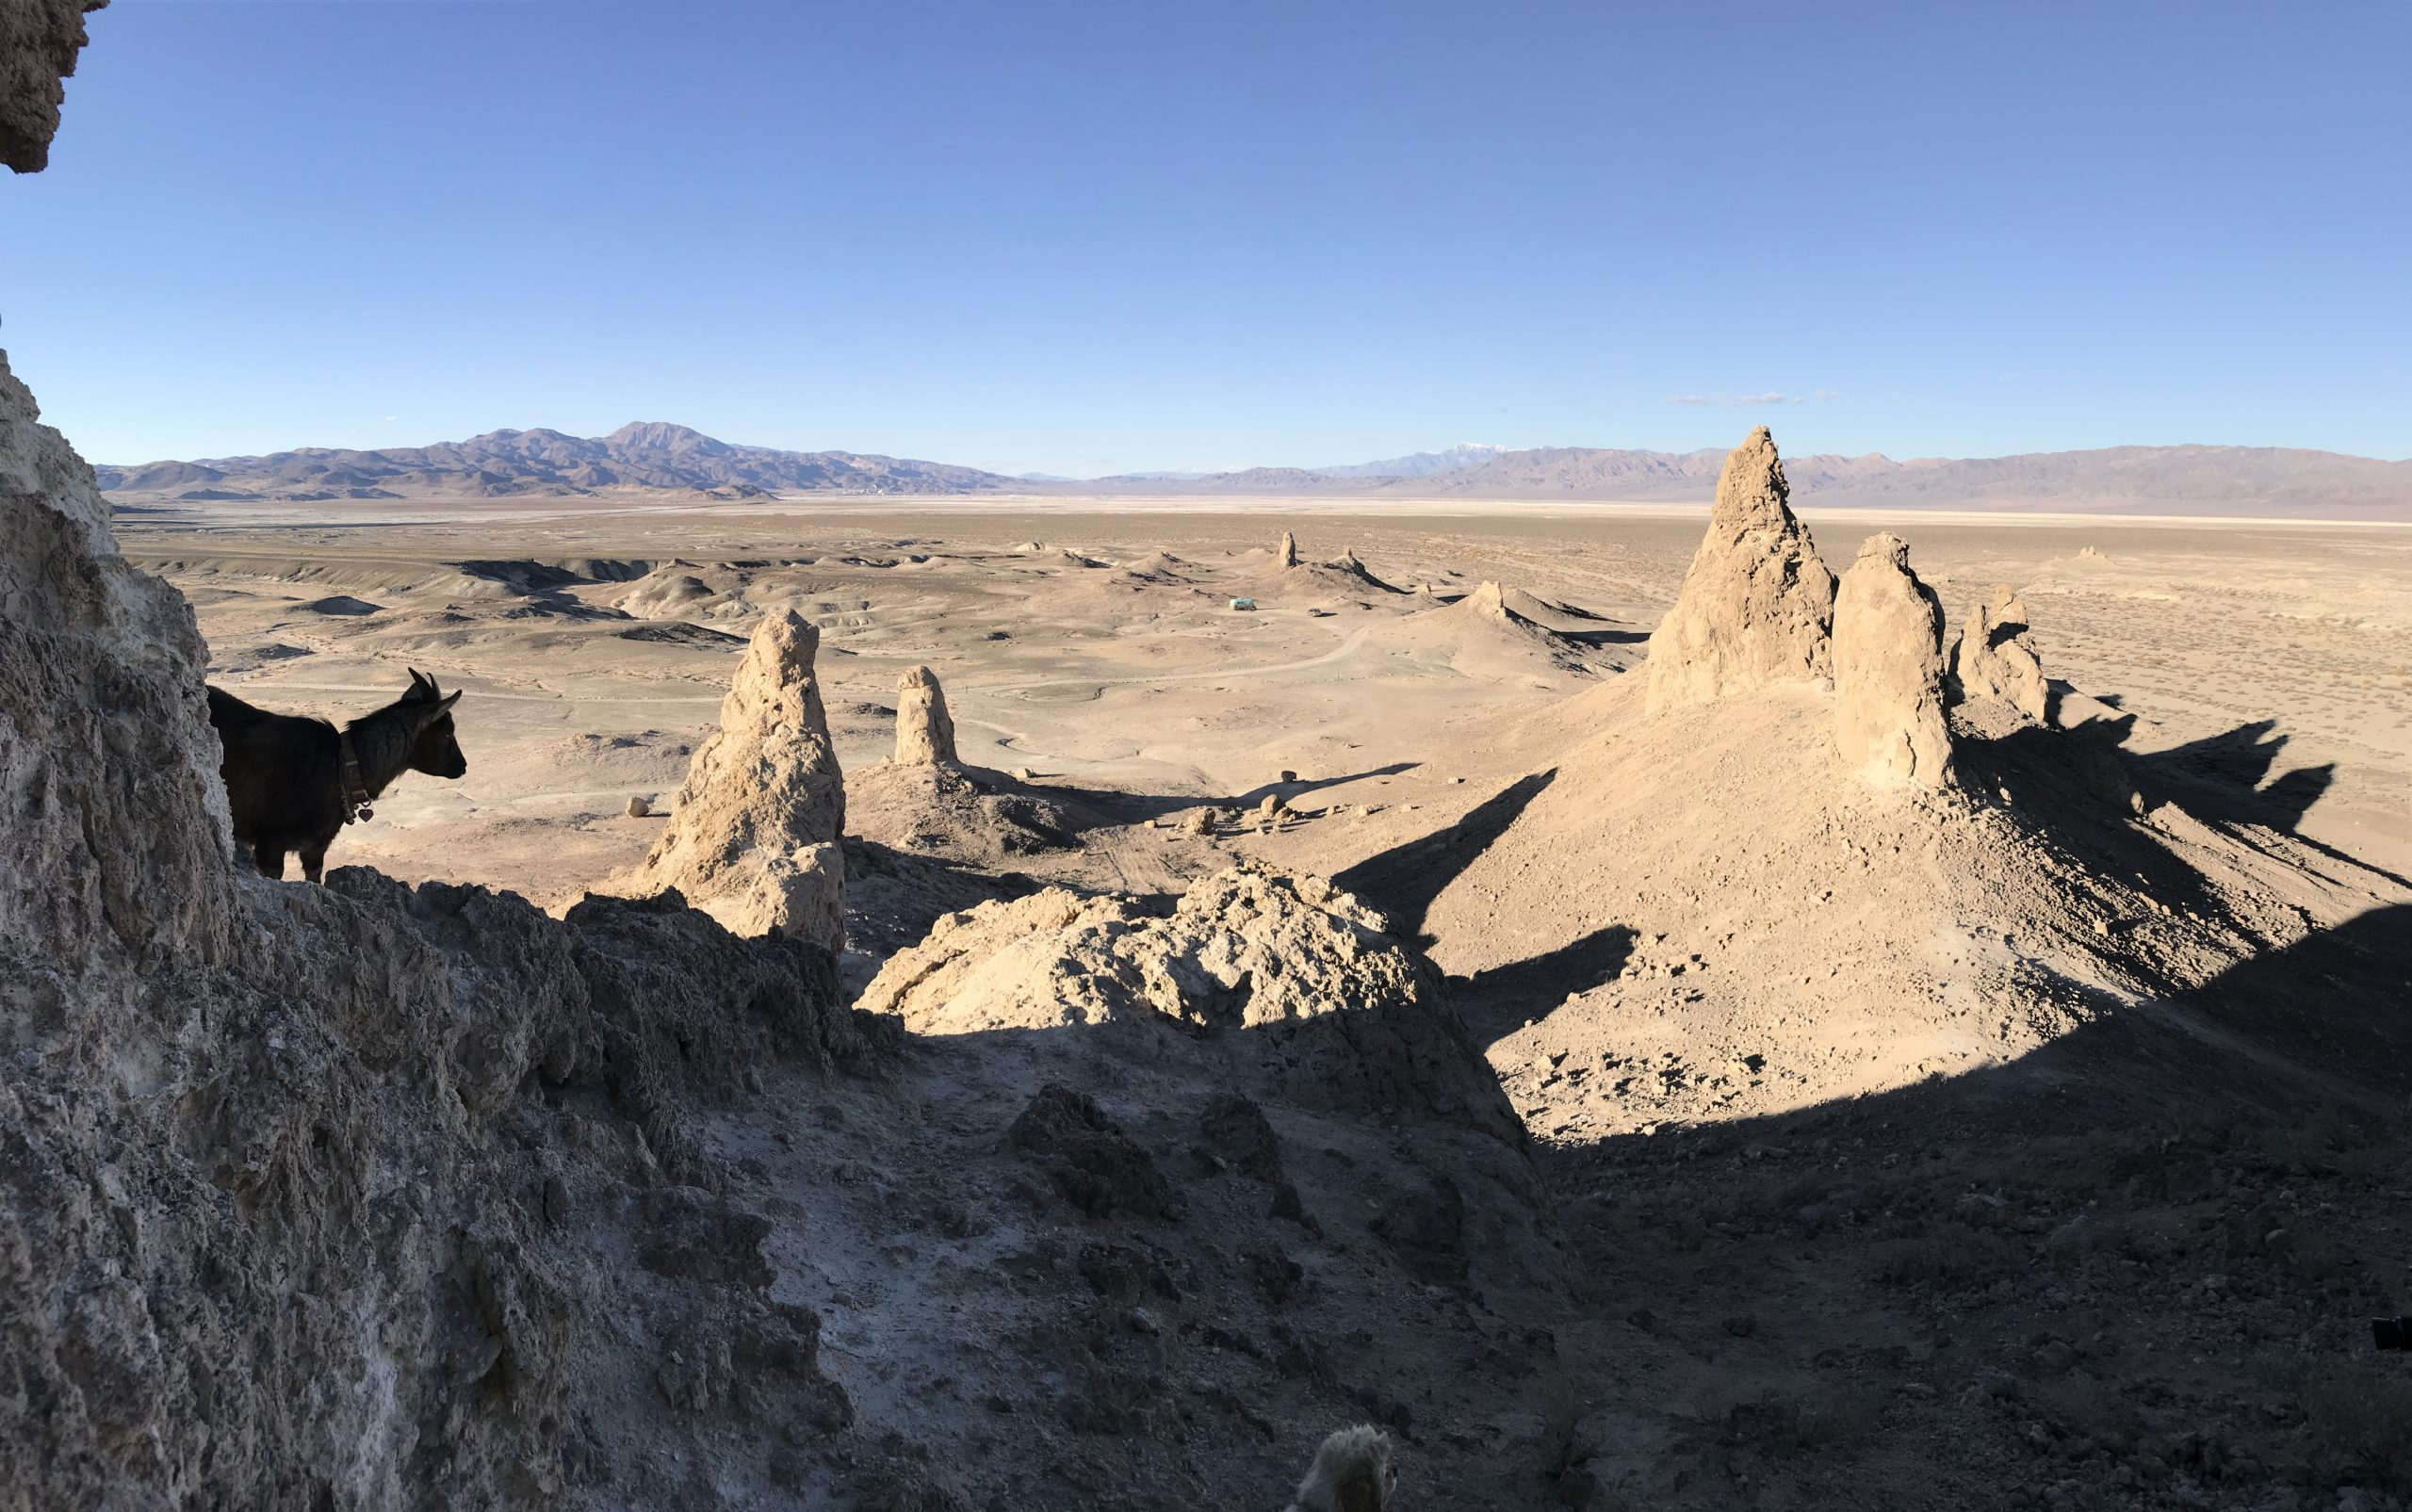 Rocky formations from mountain at Trona Pinnacles with goat in left corner